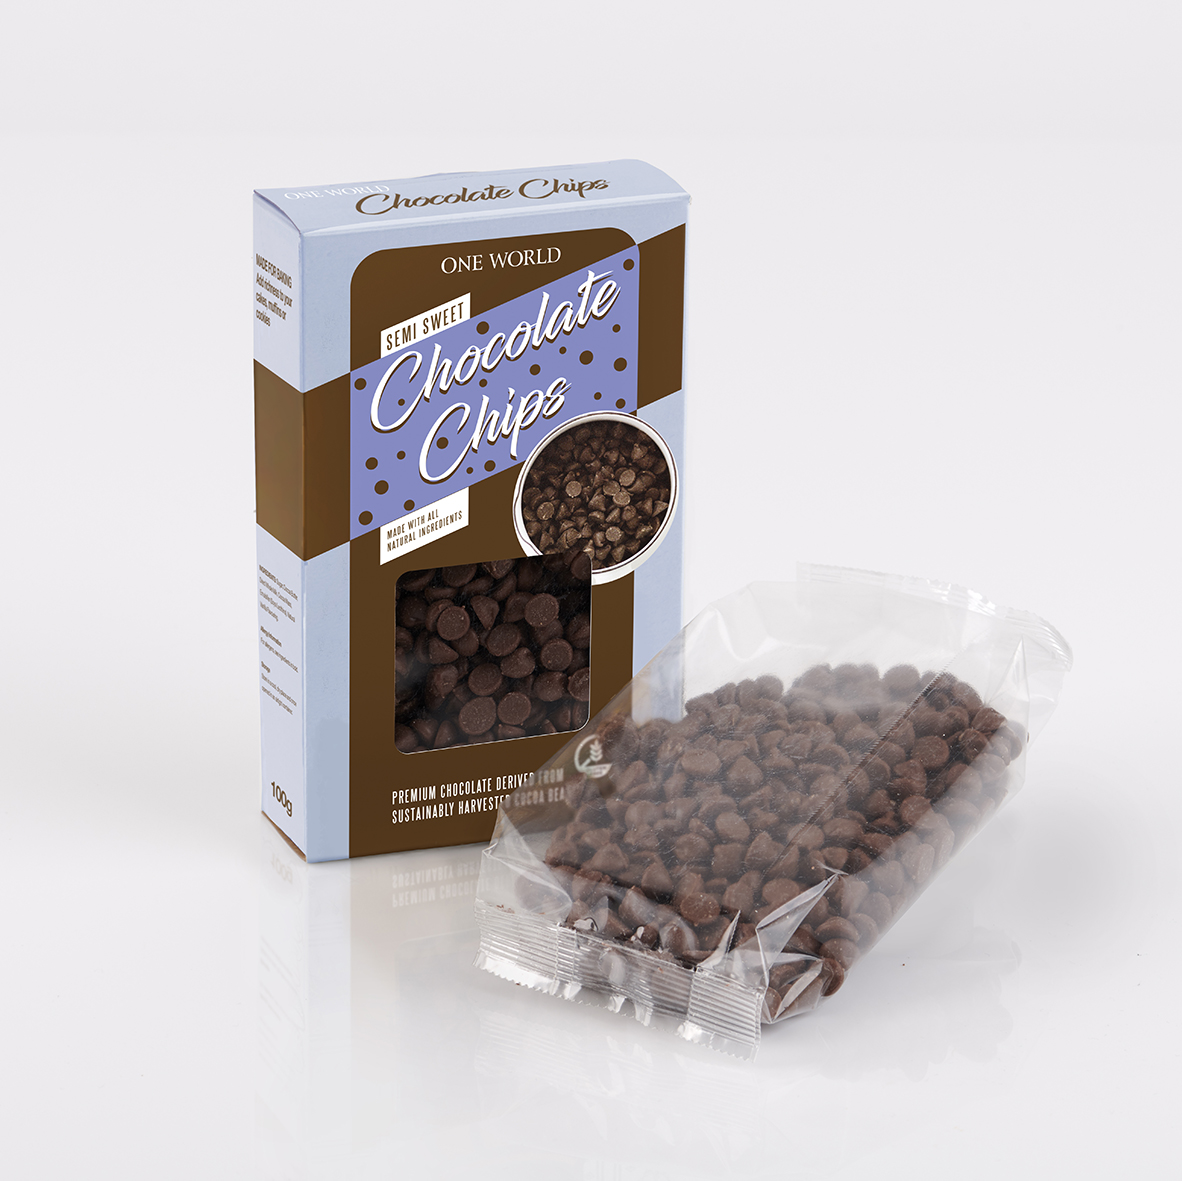 Packaging developed to offer sustainable alternatives